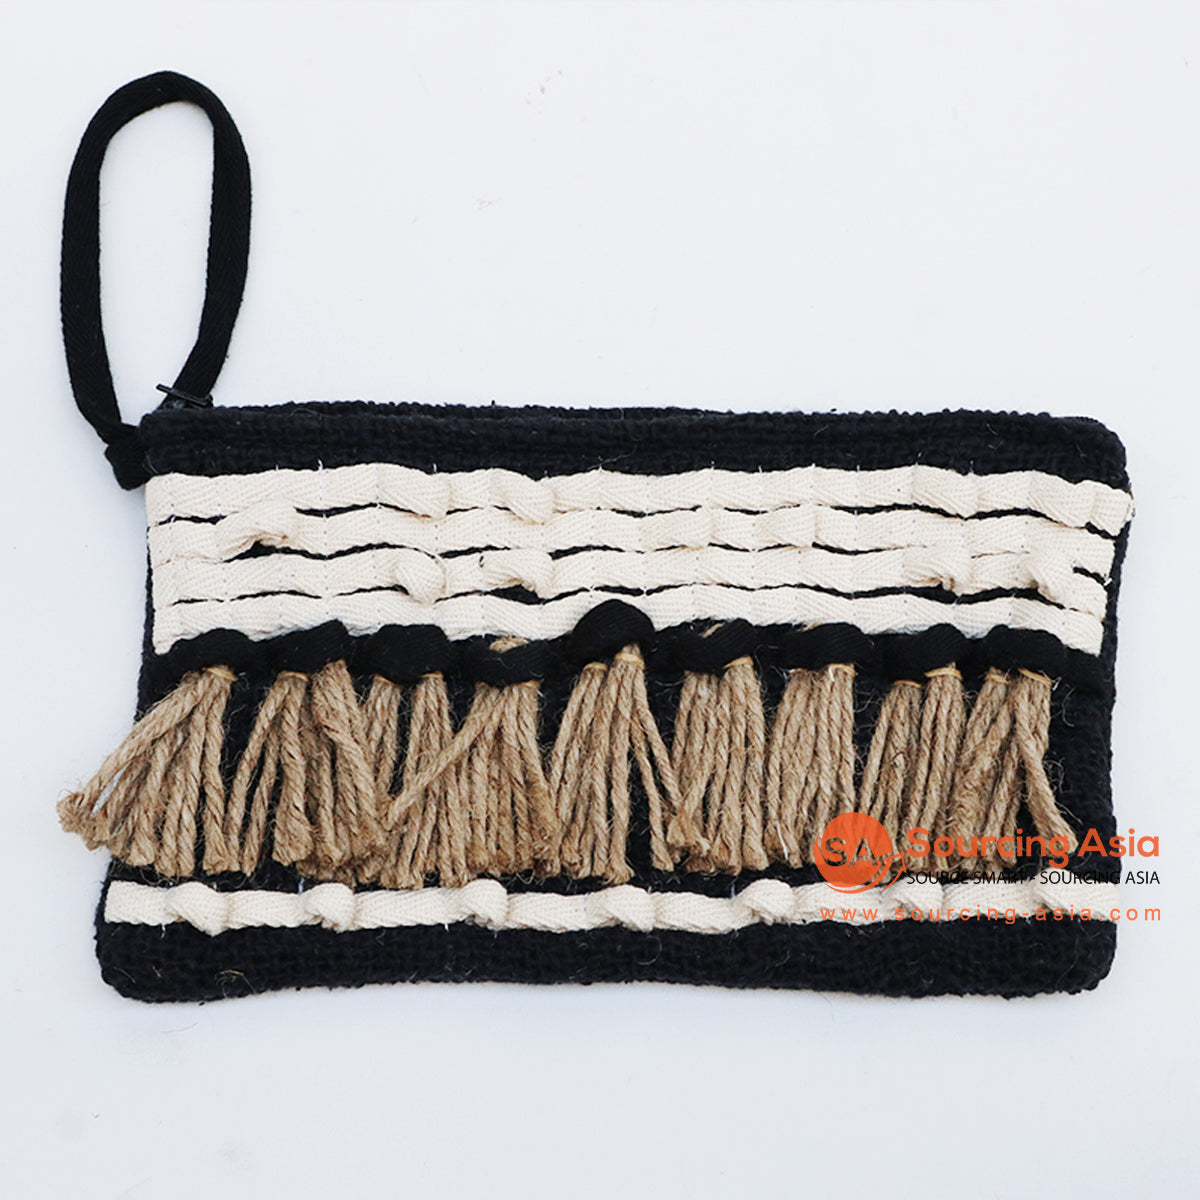 EXAC004-6 MACRAME PURSE WITH SHELLS AND BEADING